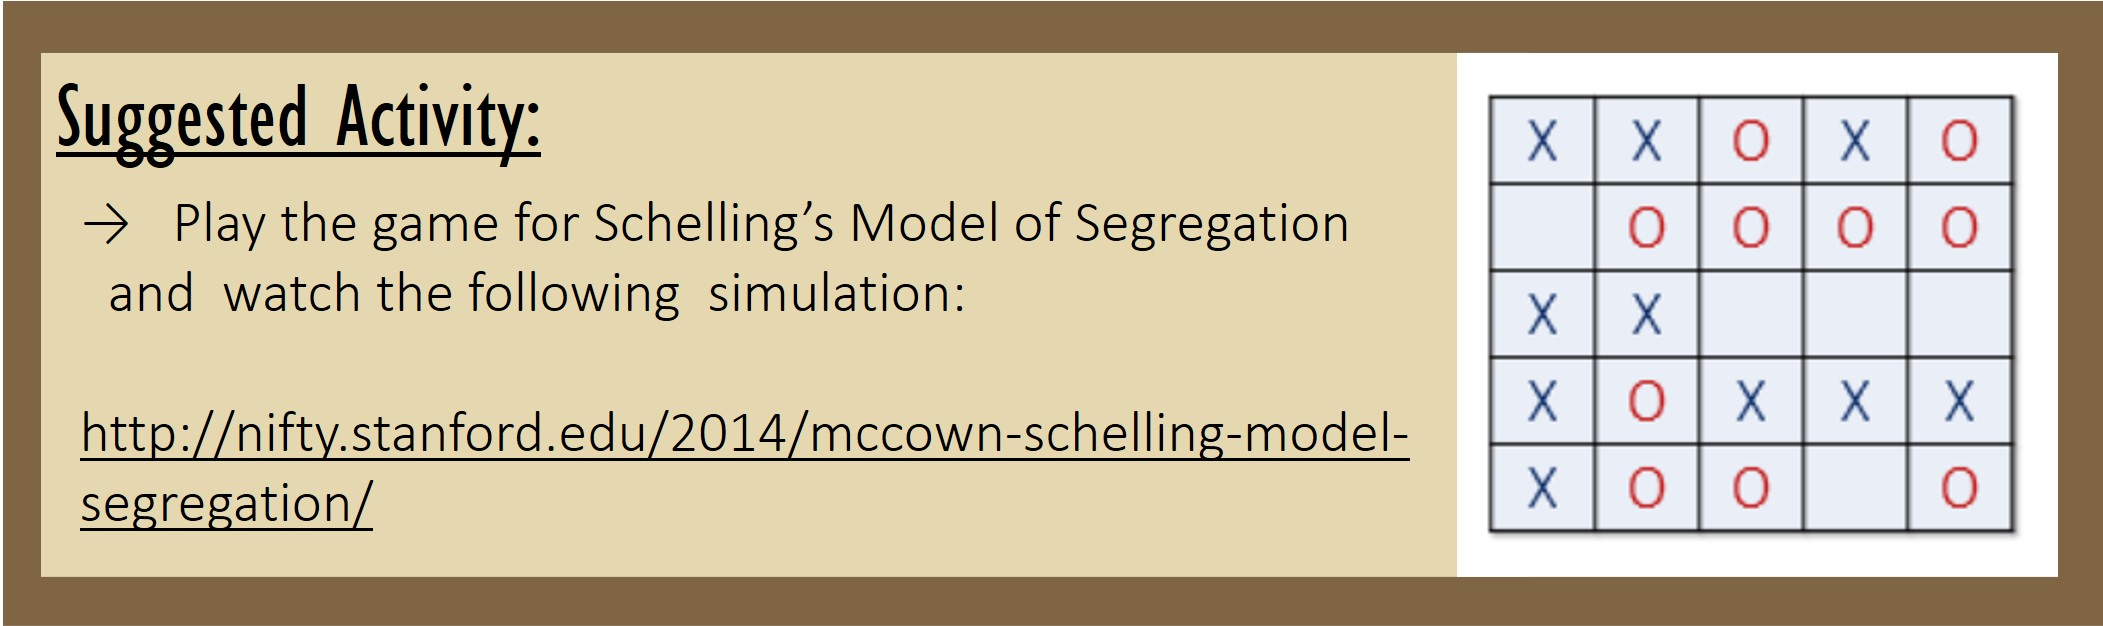 Suggested Activity: Play the game for Schelling's Model of Segregation and watch the following simulation: http://nifty.stanford.edu/2014/mccown-schelling-model-segregation/